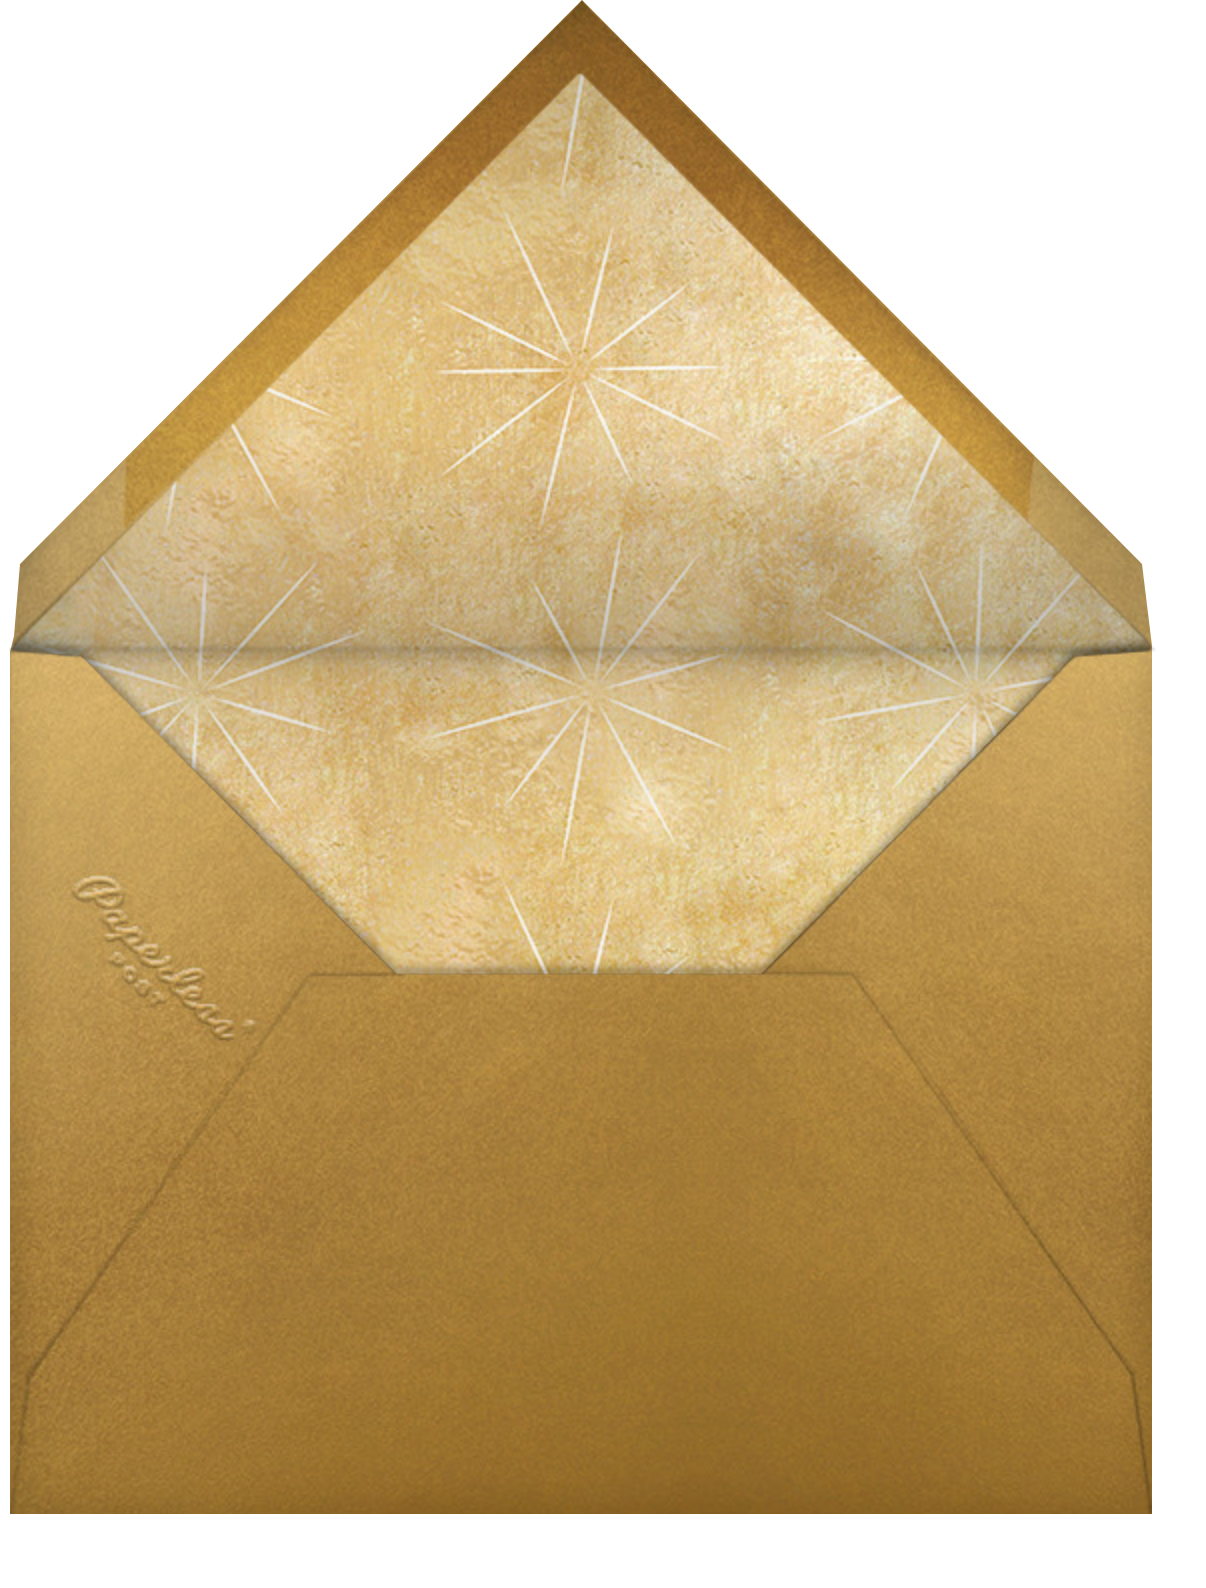 Modest Dazzle - Douglas - Paperless Post - New Year's Eve - envelope back